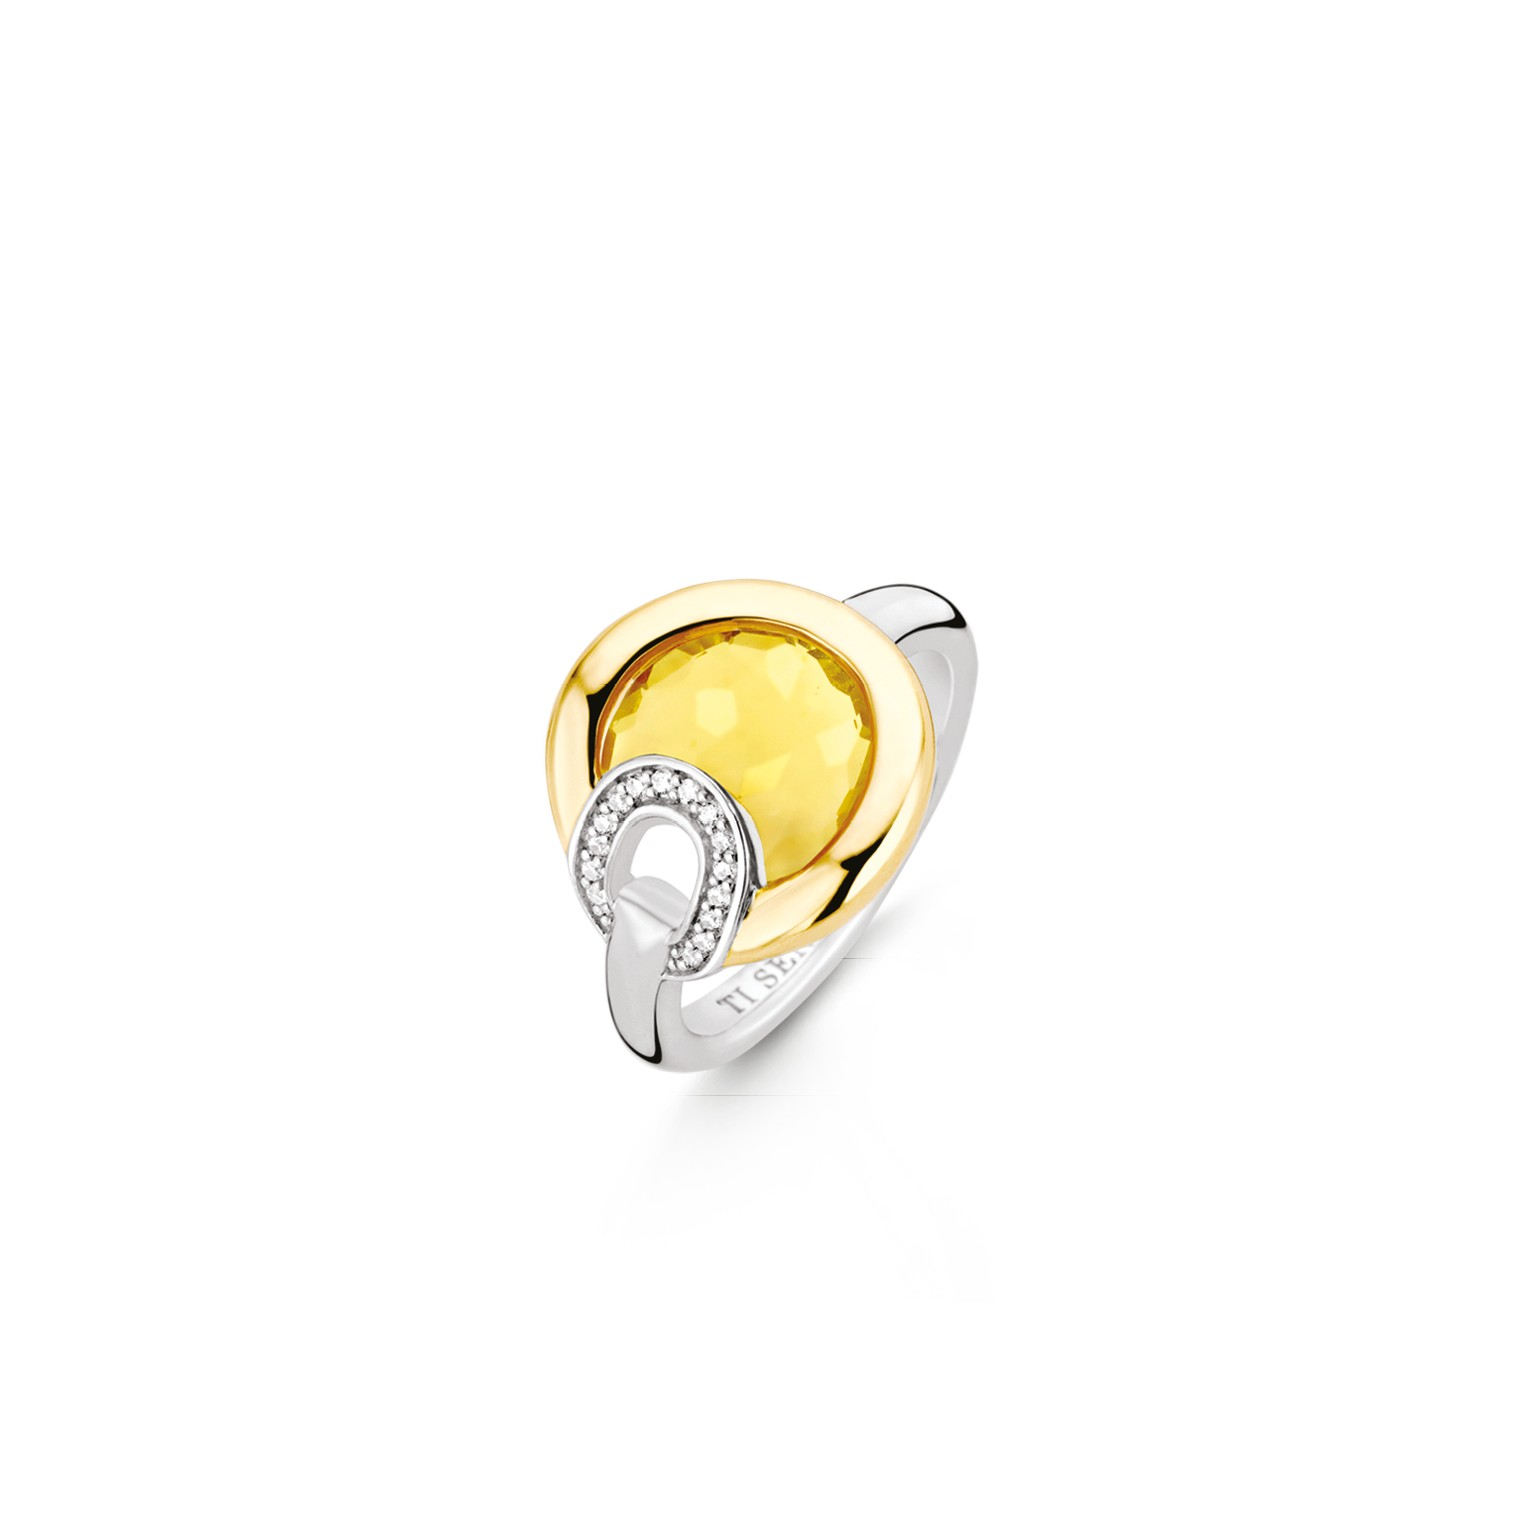 TI SENTO Milano Ring 12159TY Zilver gold plated Maat 62